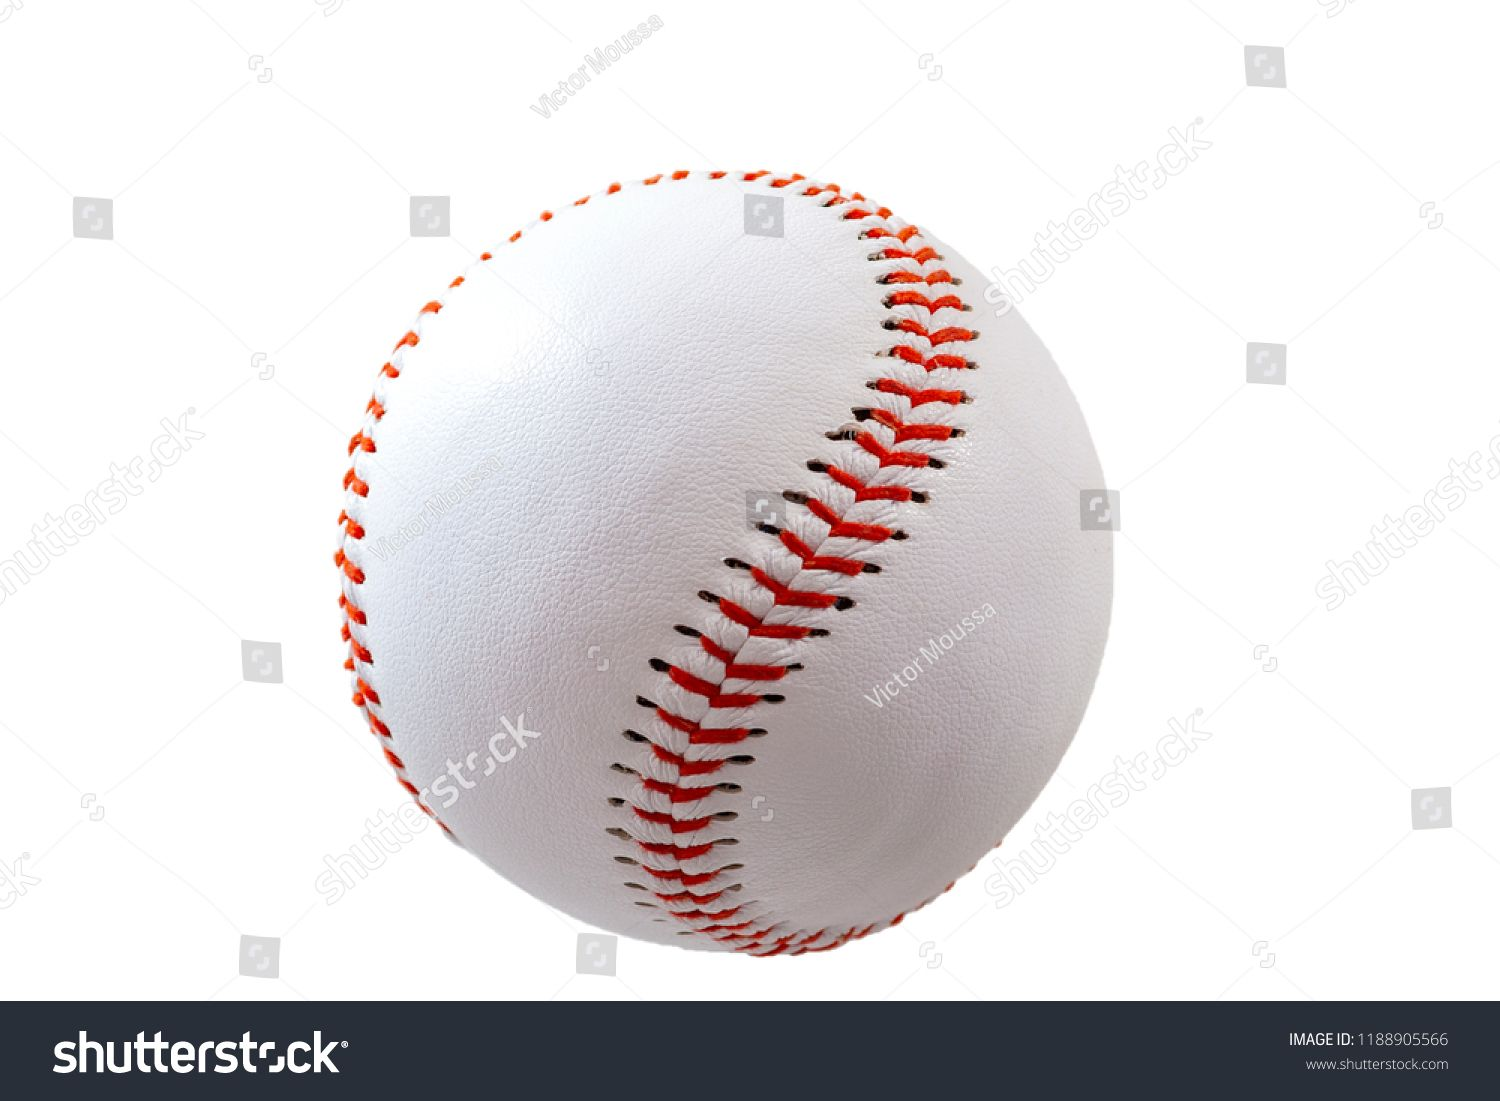 Sports Equipment And American Leisure Activity Concept With A White Leather Ball Used In The Game Of Baseball Leisure Activities Sports Equipment Photo Editing